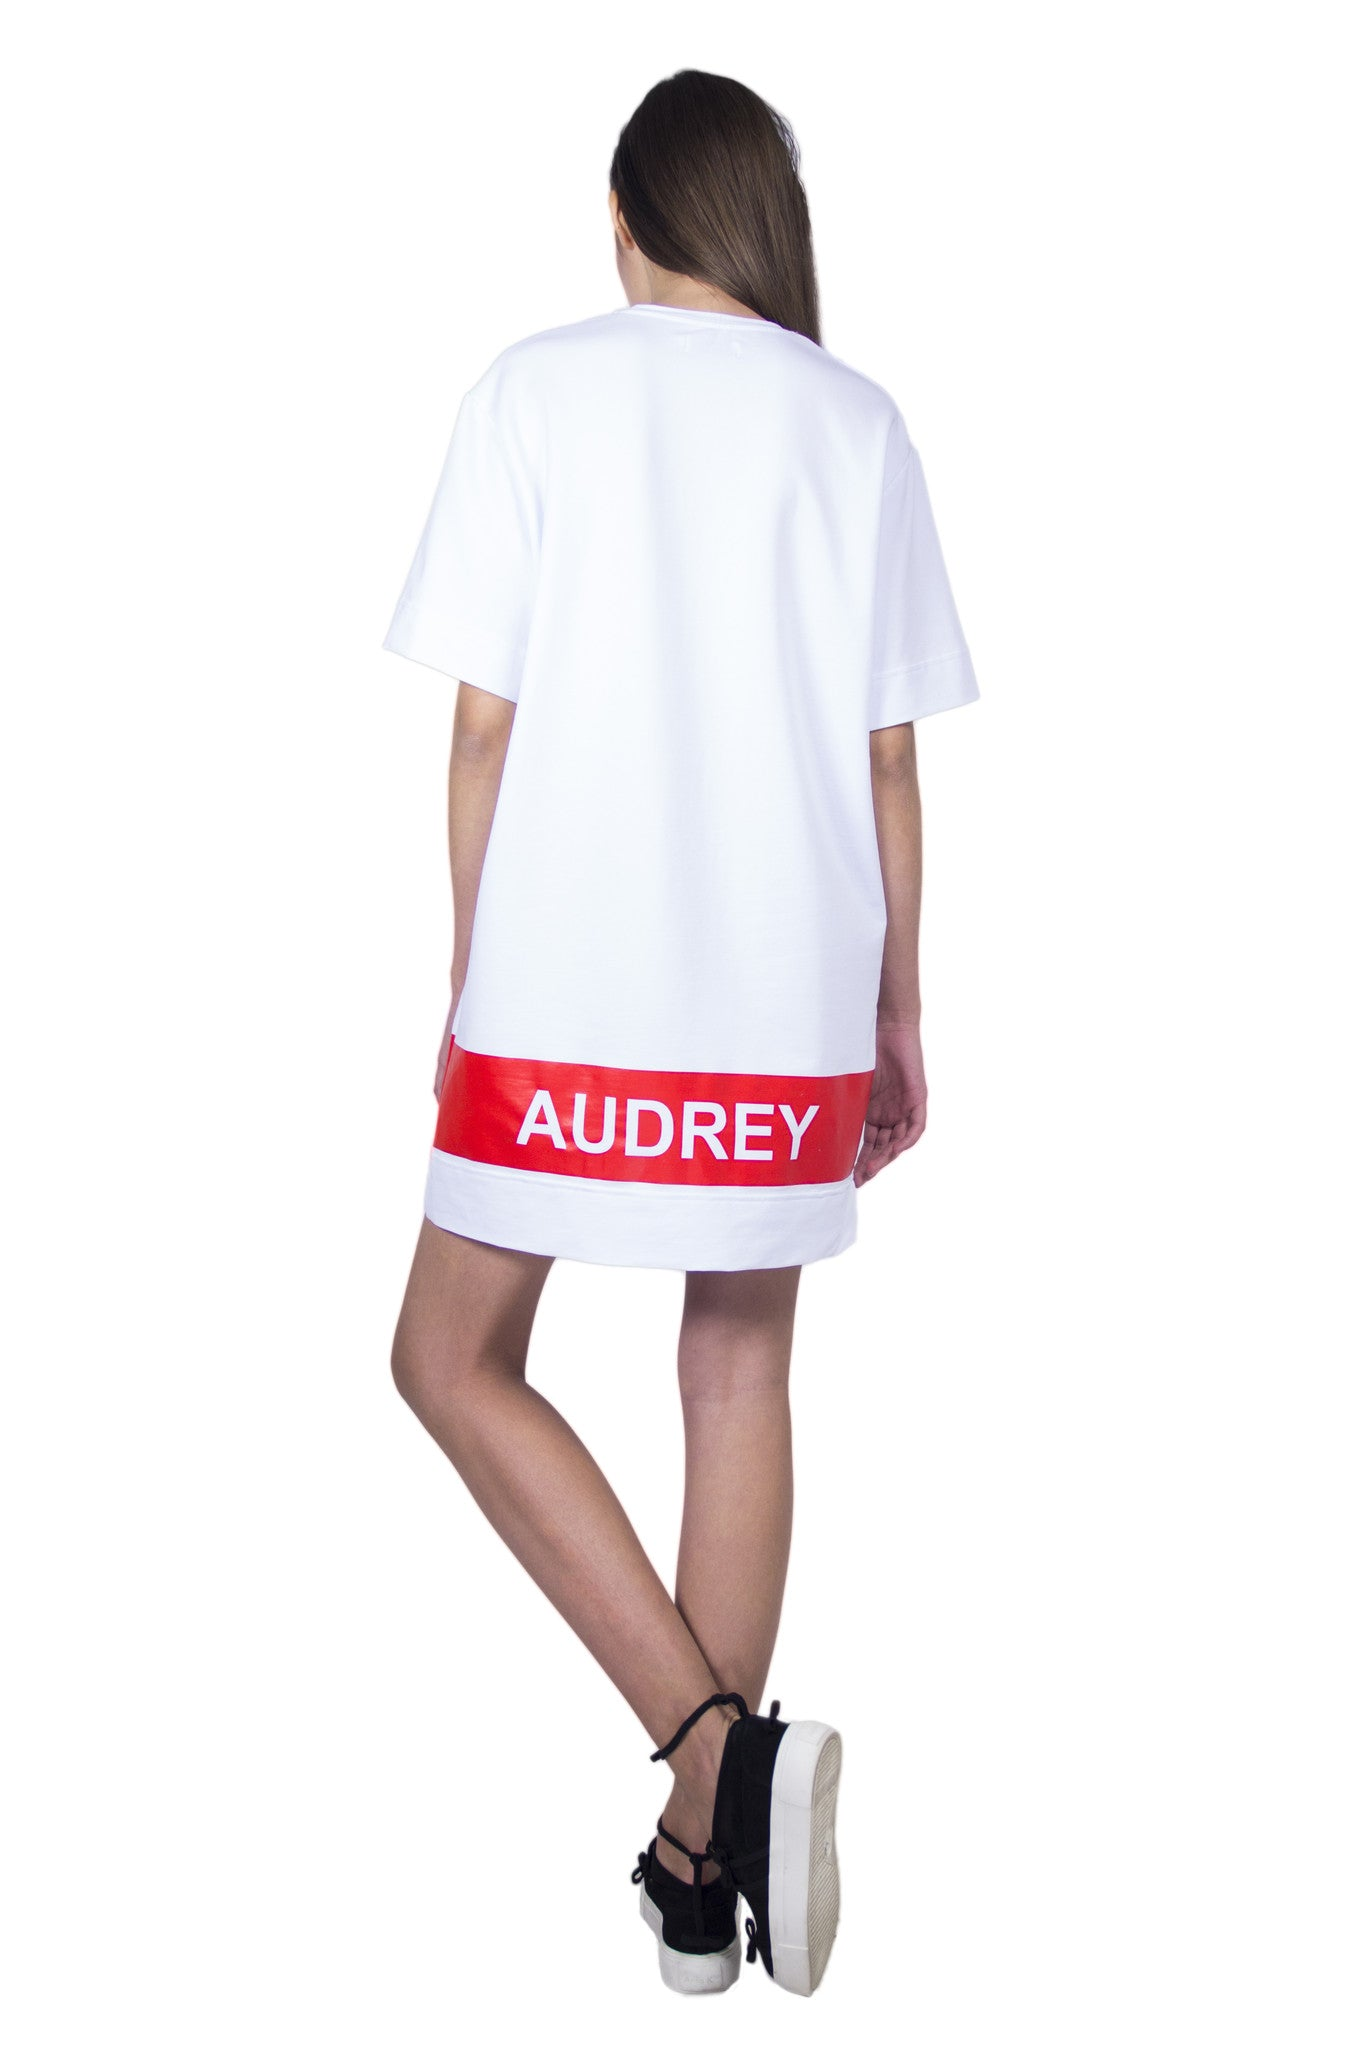 Every girl is Audrey - Anna K  - 1